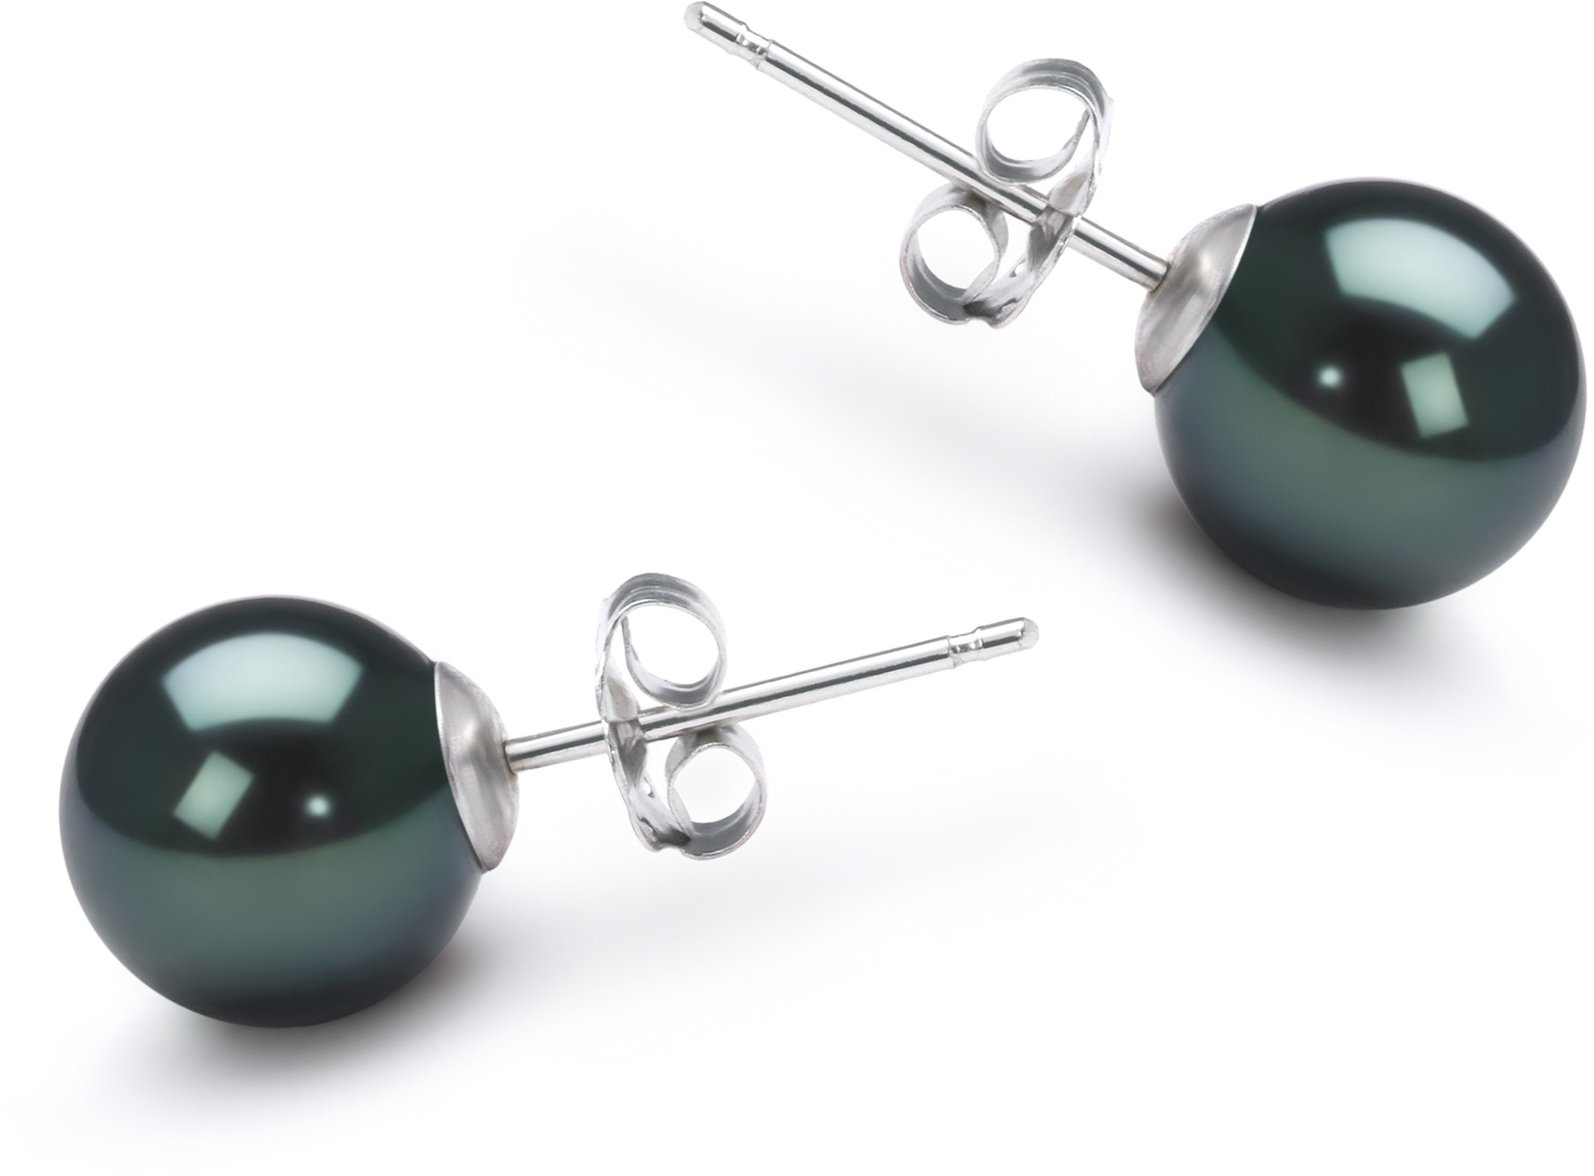 PearlsOnly - Black 7-8mm AA Quality Japanese Akoya 14K White Gold Cultured Pearl Earring Pair